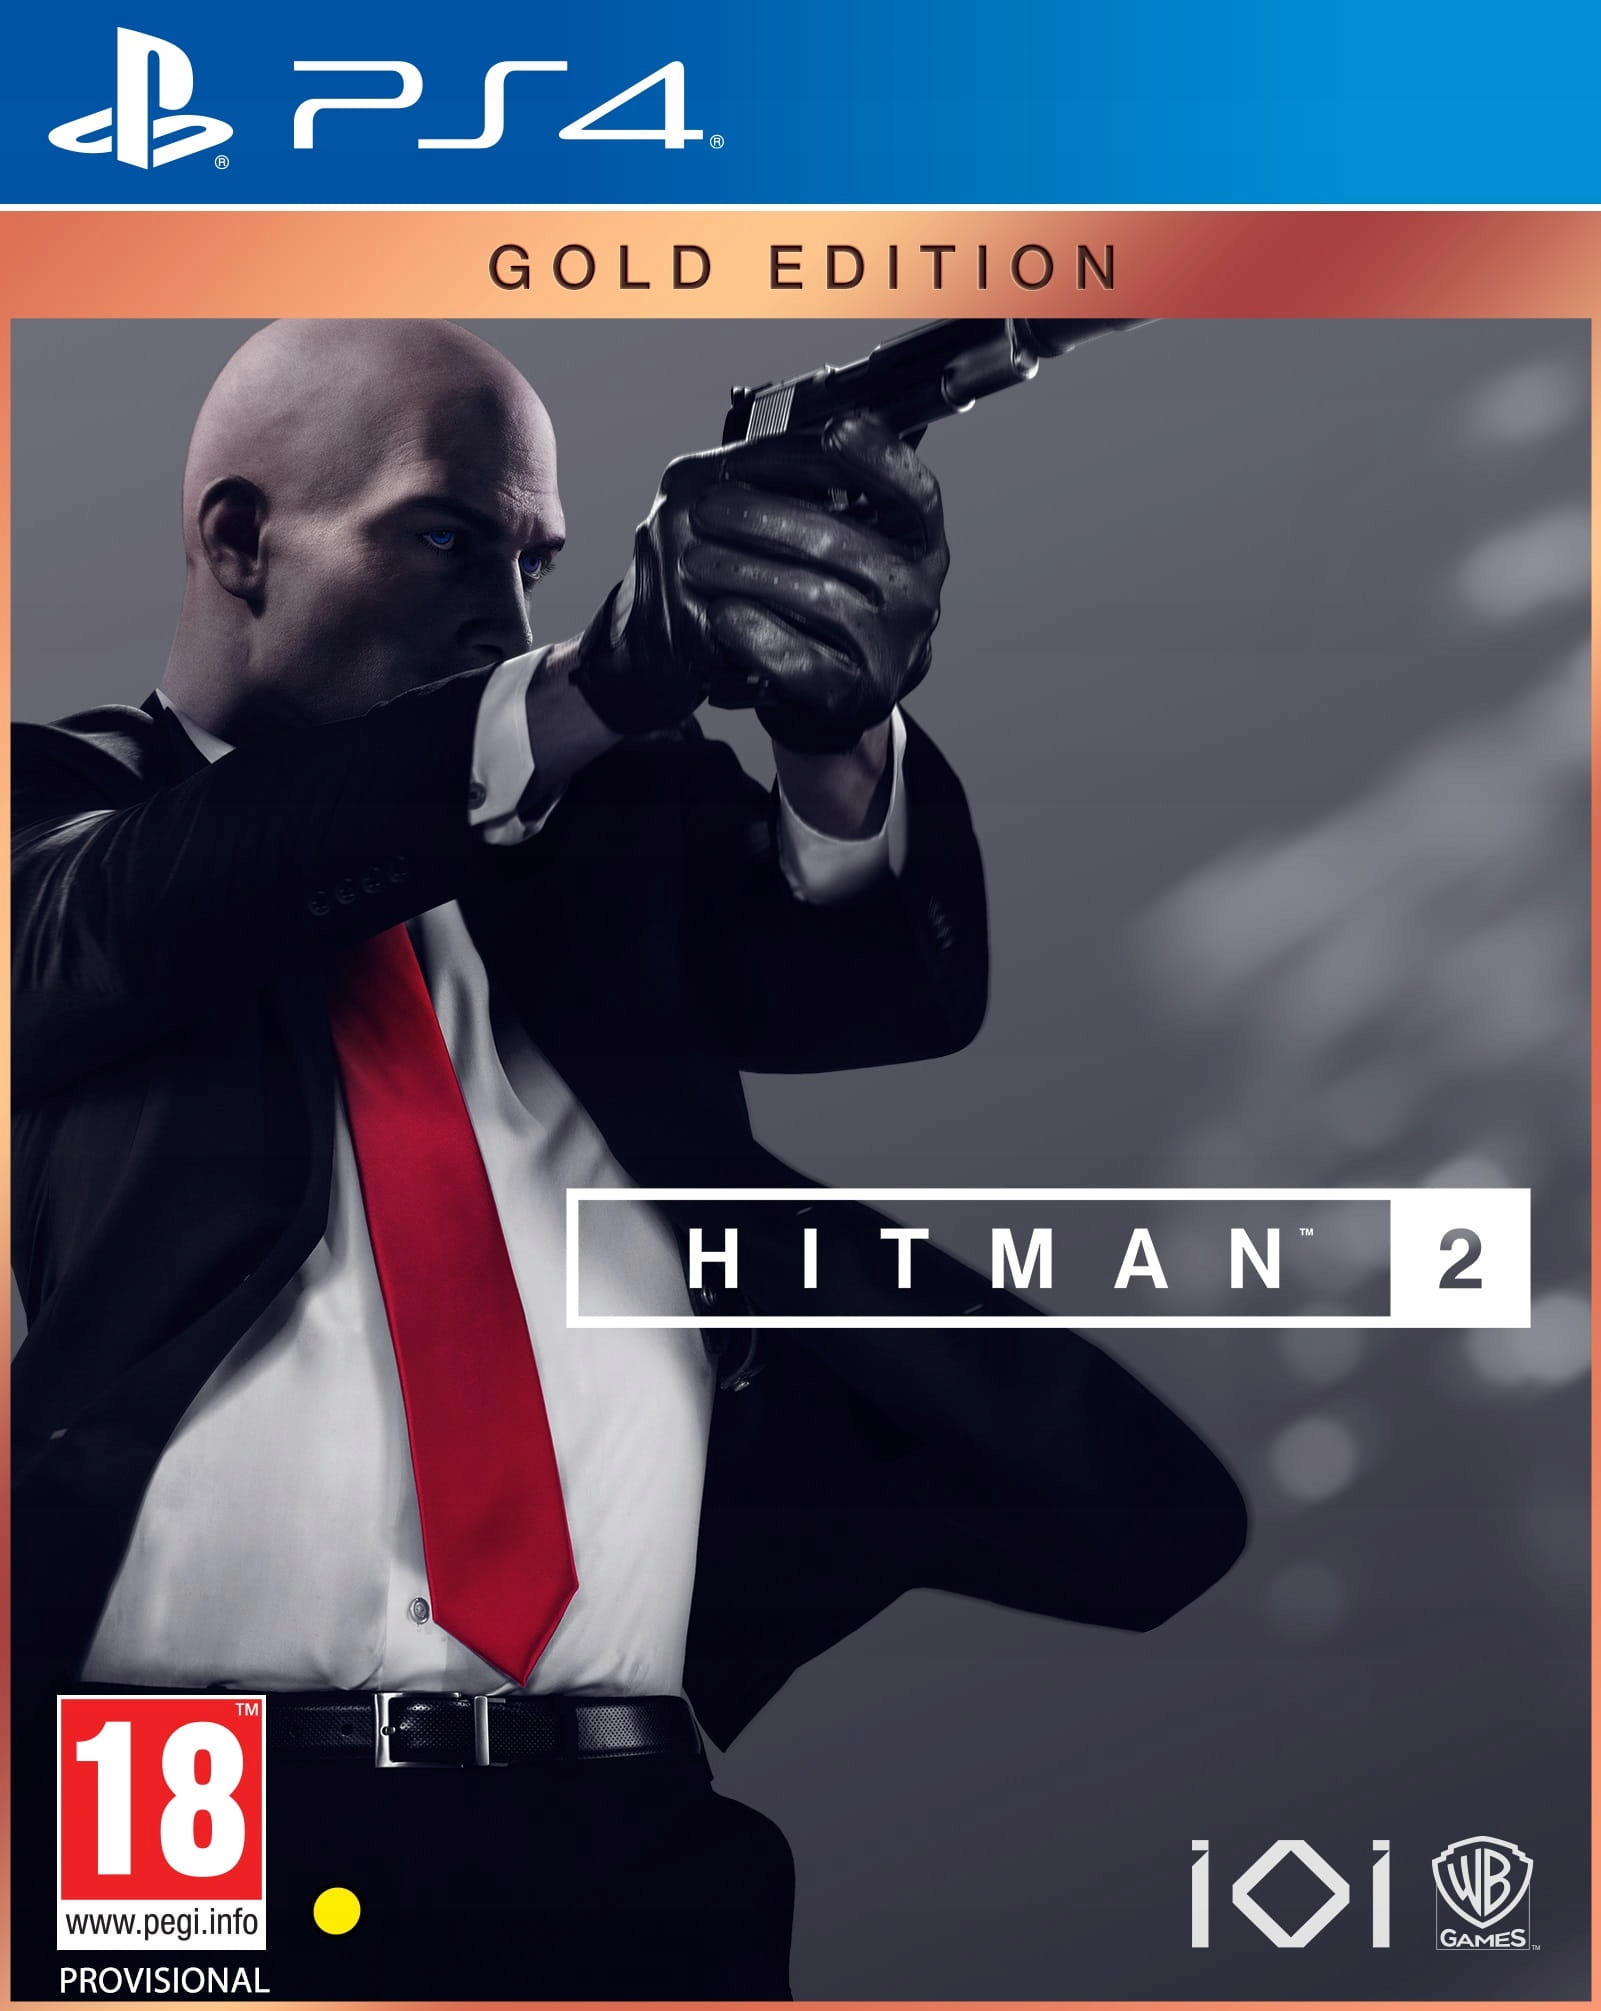 Hitman 2 - Gold Edition [PS4] 5.05 / 6.72 / 7.02 [USA] (2018) [Русский] (v1.21)